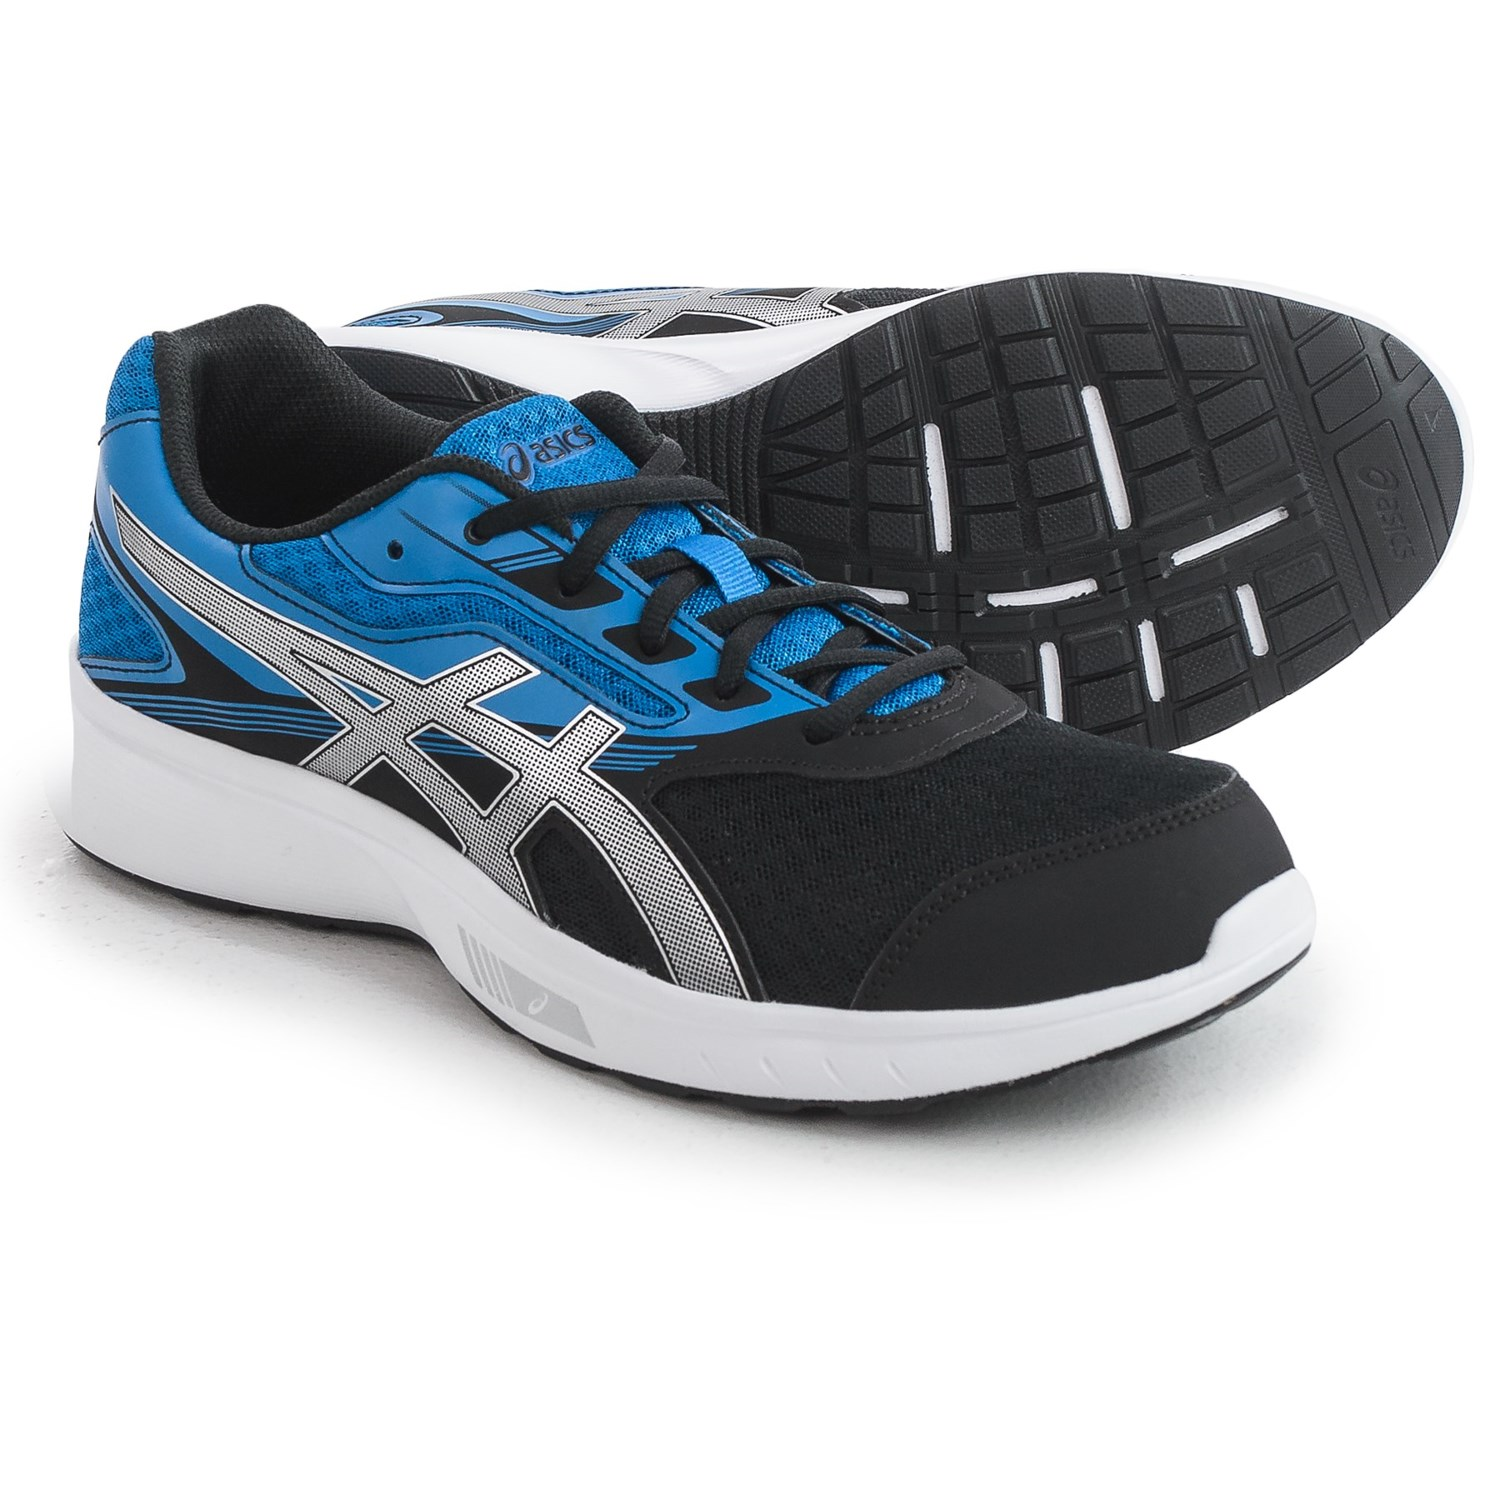 Buy Running Buy Running Shoes Deals Asics Shoes Asics 8Owk0XnP